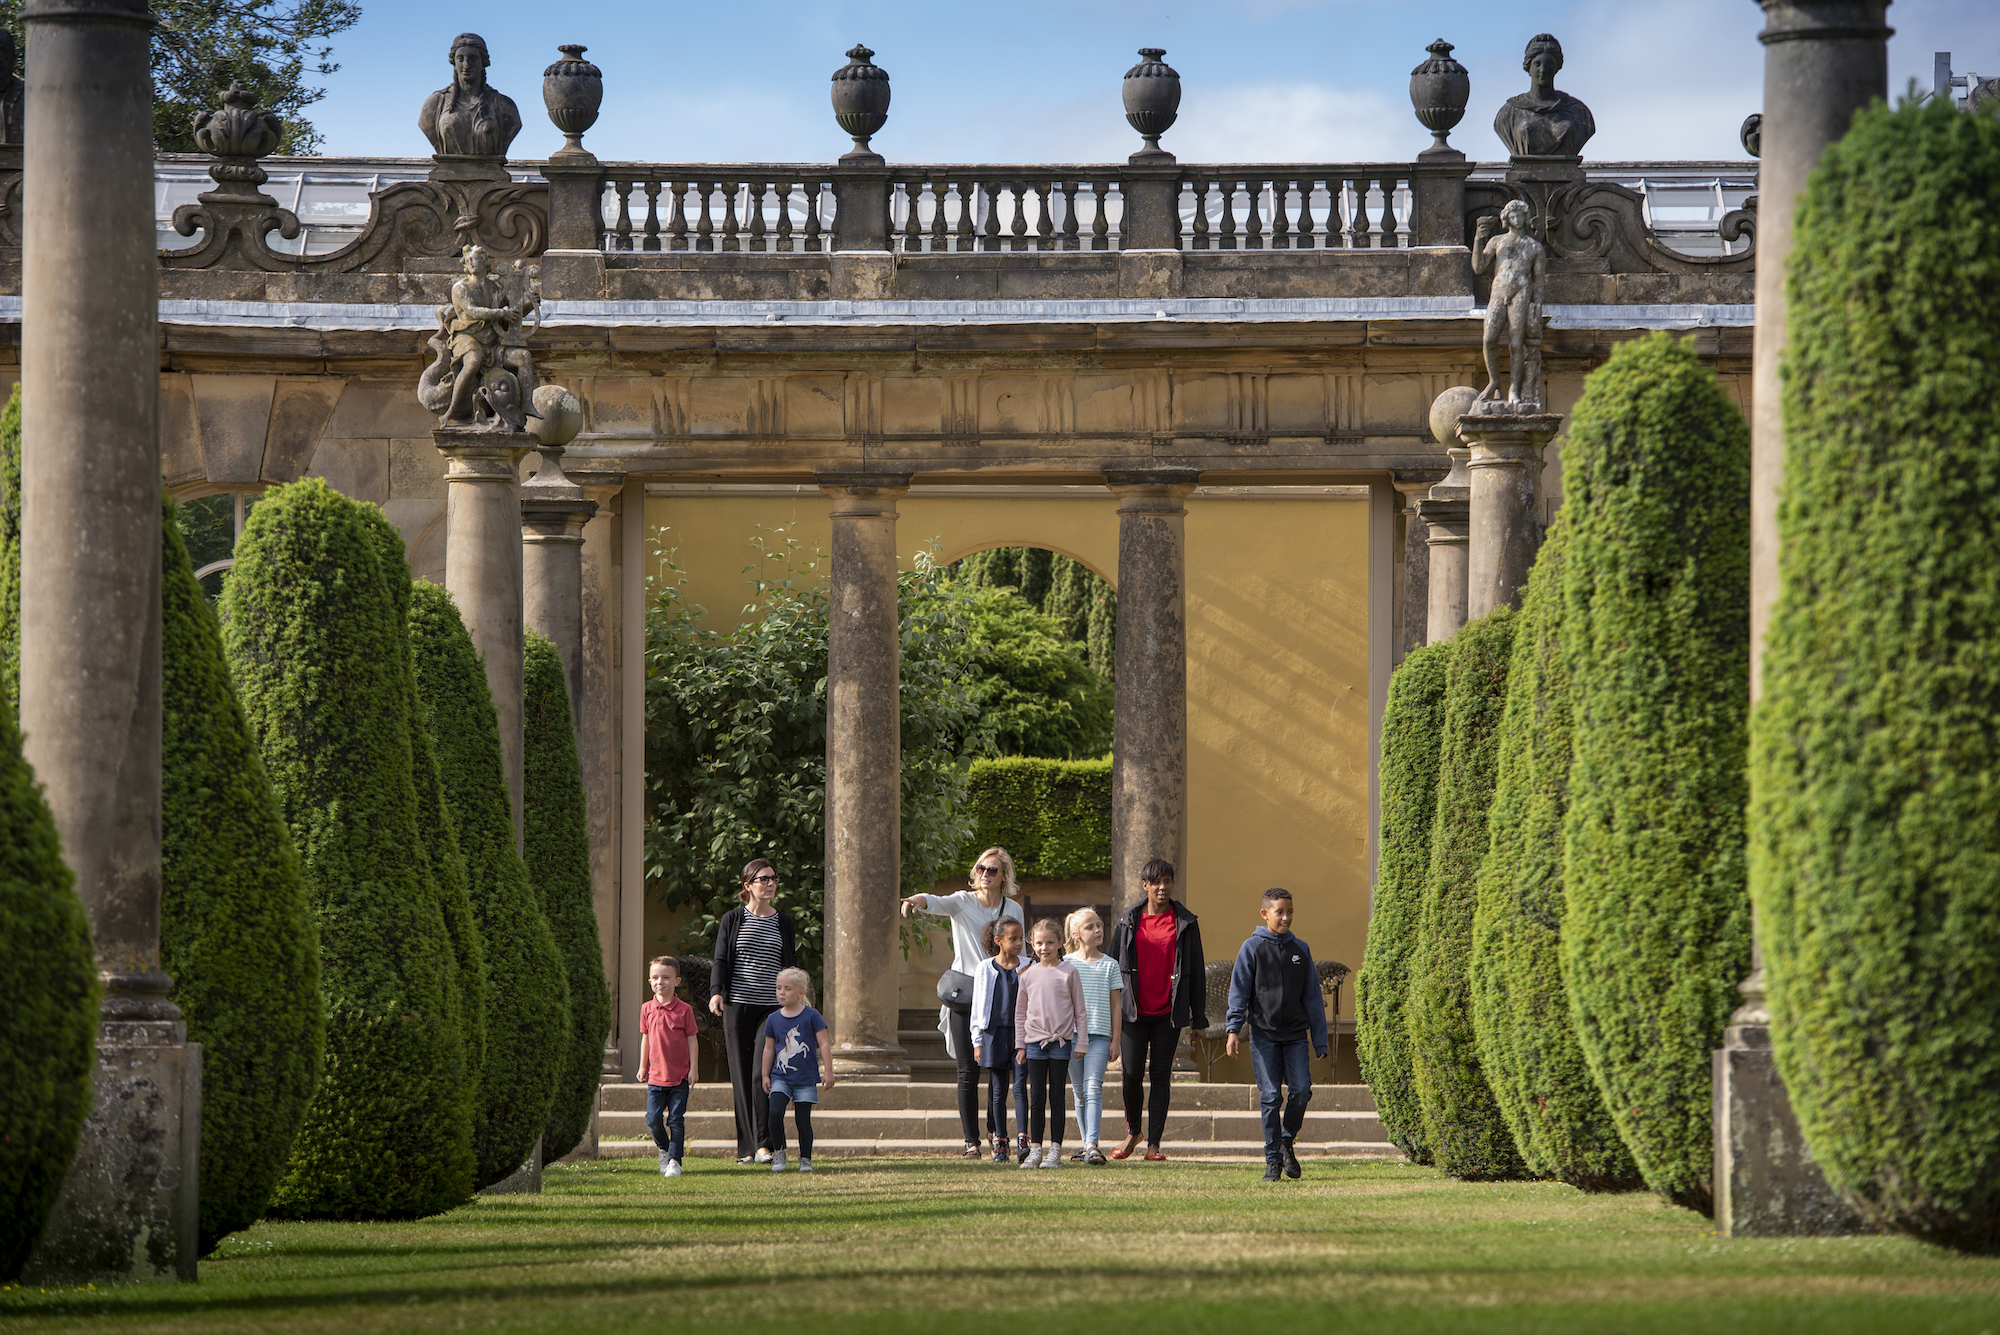 Chatsworth Summer 2018 - Family inspired activities during holidays